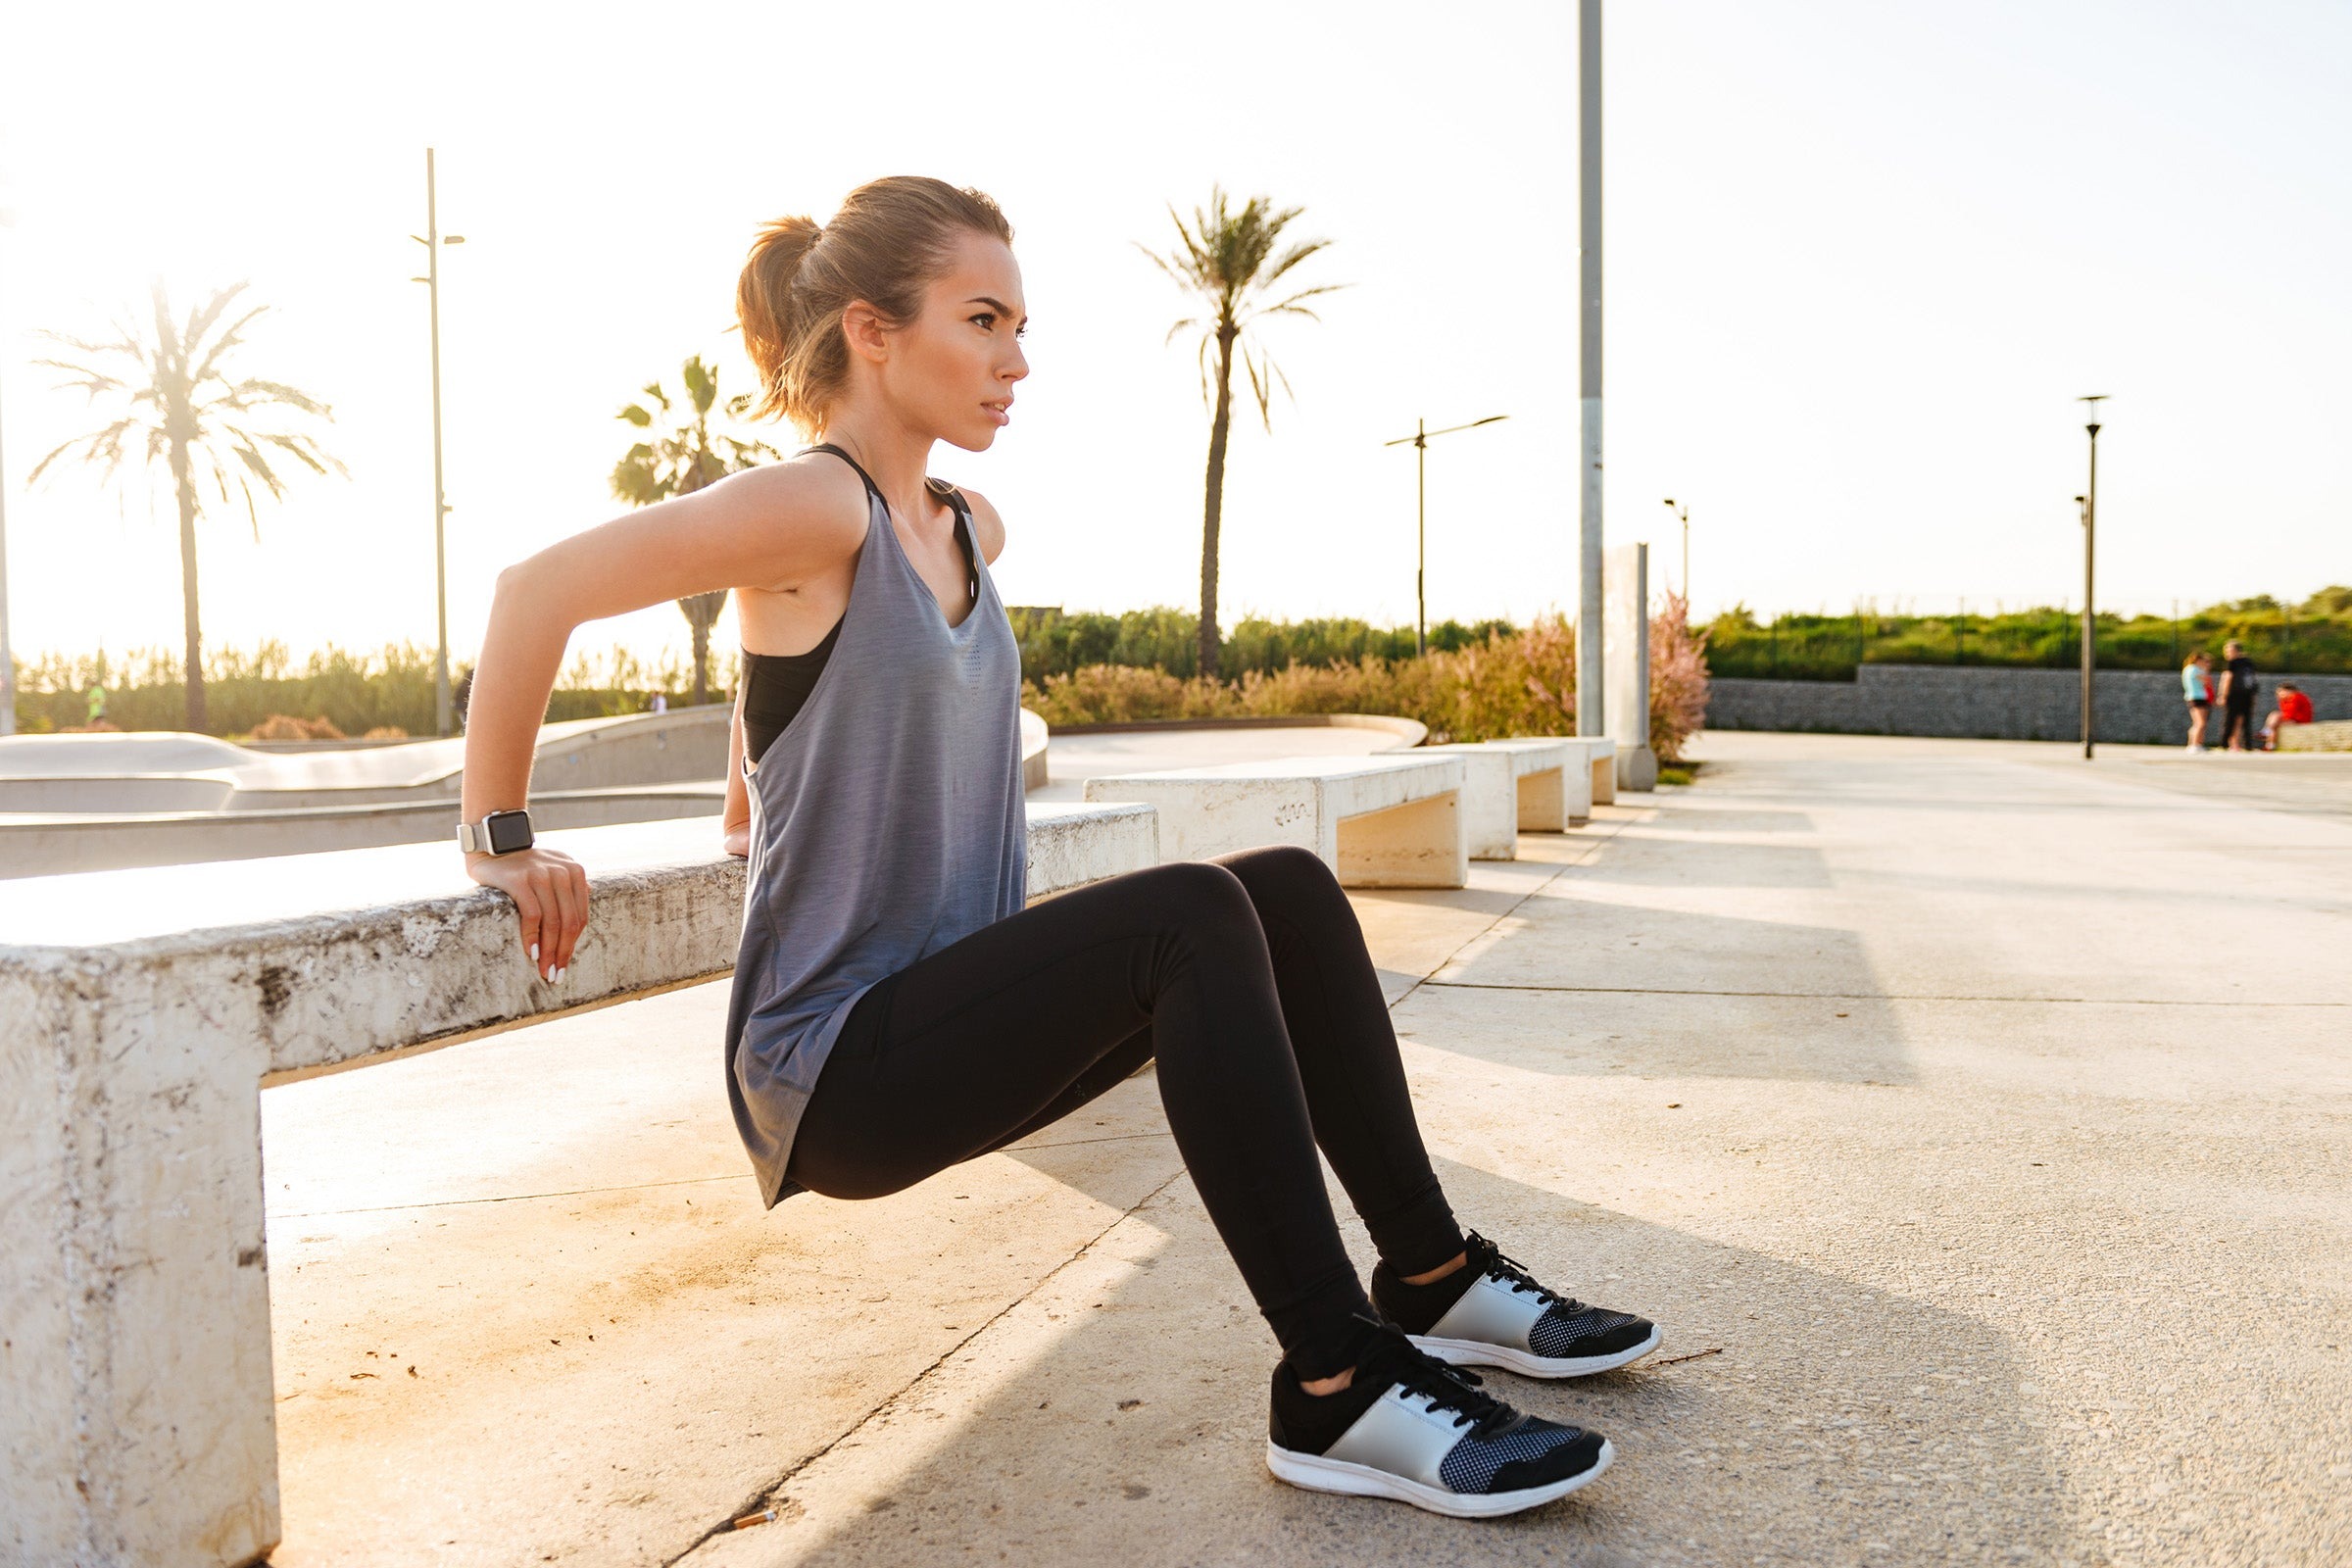 HIIT exercises can include bodyweight movements like squats, jumps, push-ups, lunges, and burpees.